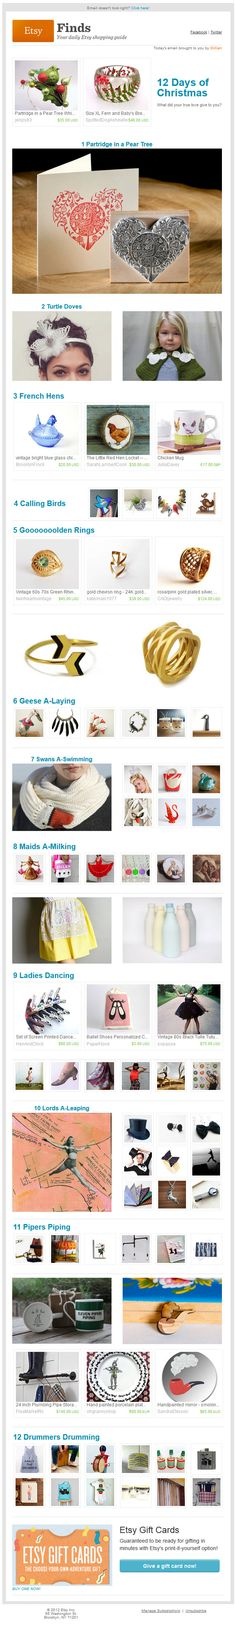 """Etsy >> sent 12/26/12 >> 12 Days of Christmas >> Obsessed with grouping products into fun themes, Etsy assembles festive products categorised according to the lyrics of the """"12 Days of Christmas"""" in this email. They sent this email the day after Christmas because that was the historical start of the 12 days of Christmas festivities described in the song. —Lindsey O'Donnell, Design Consultant, Australia, ExactTarget"""